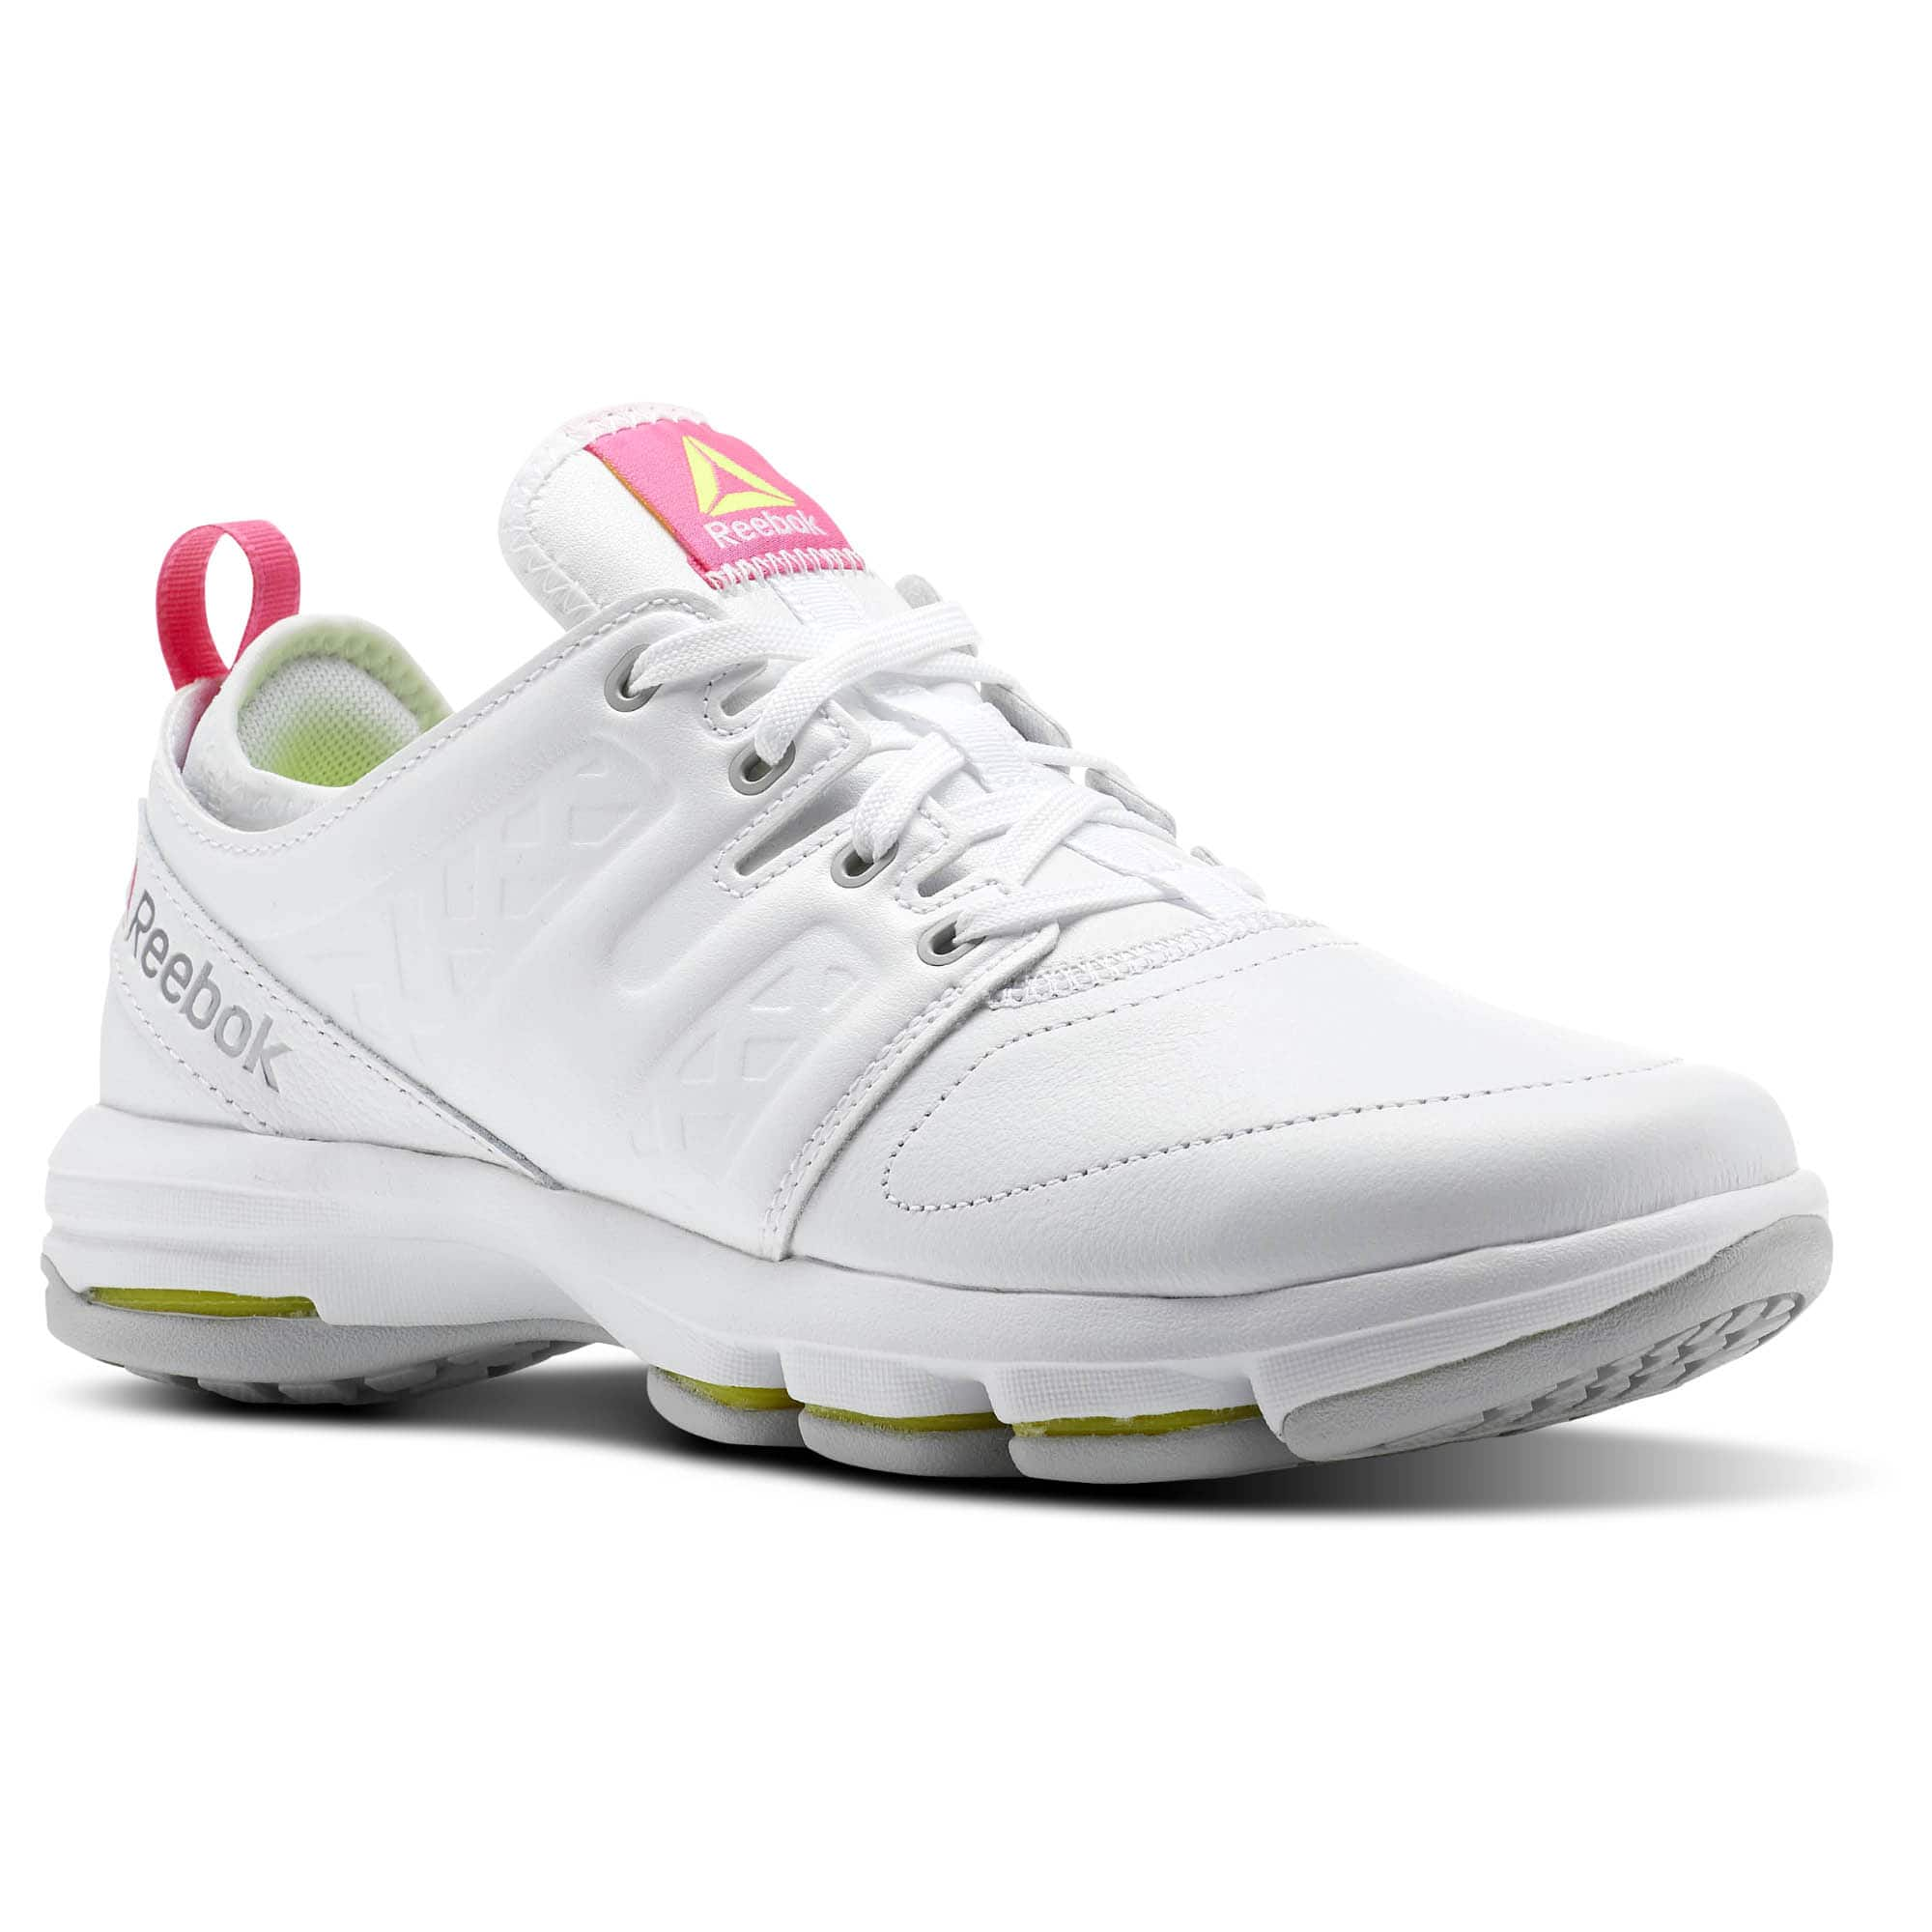 6690ce428 Reebok Select Women s Walking Shoes  29.99  Cloudride DMX Leather ...